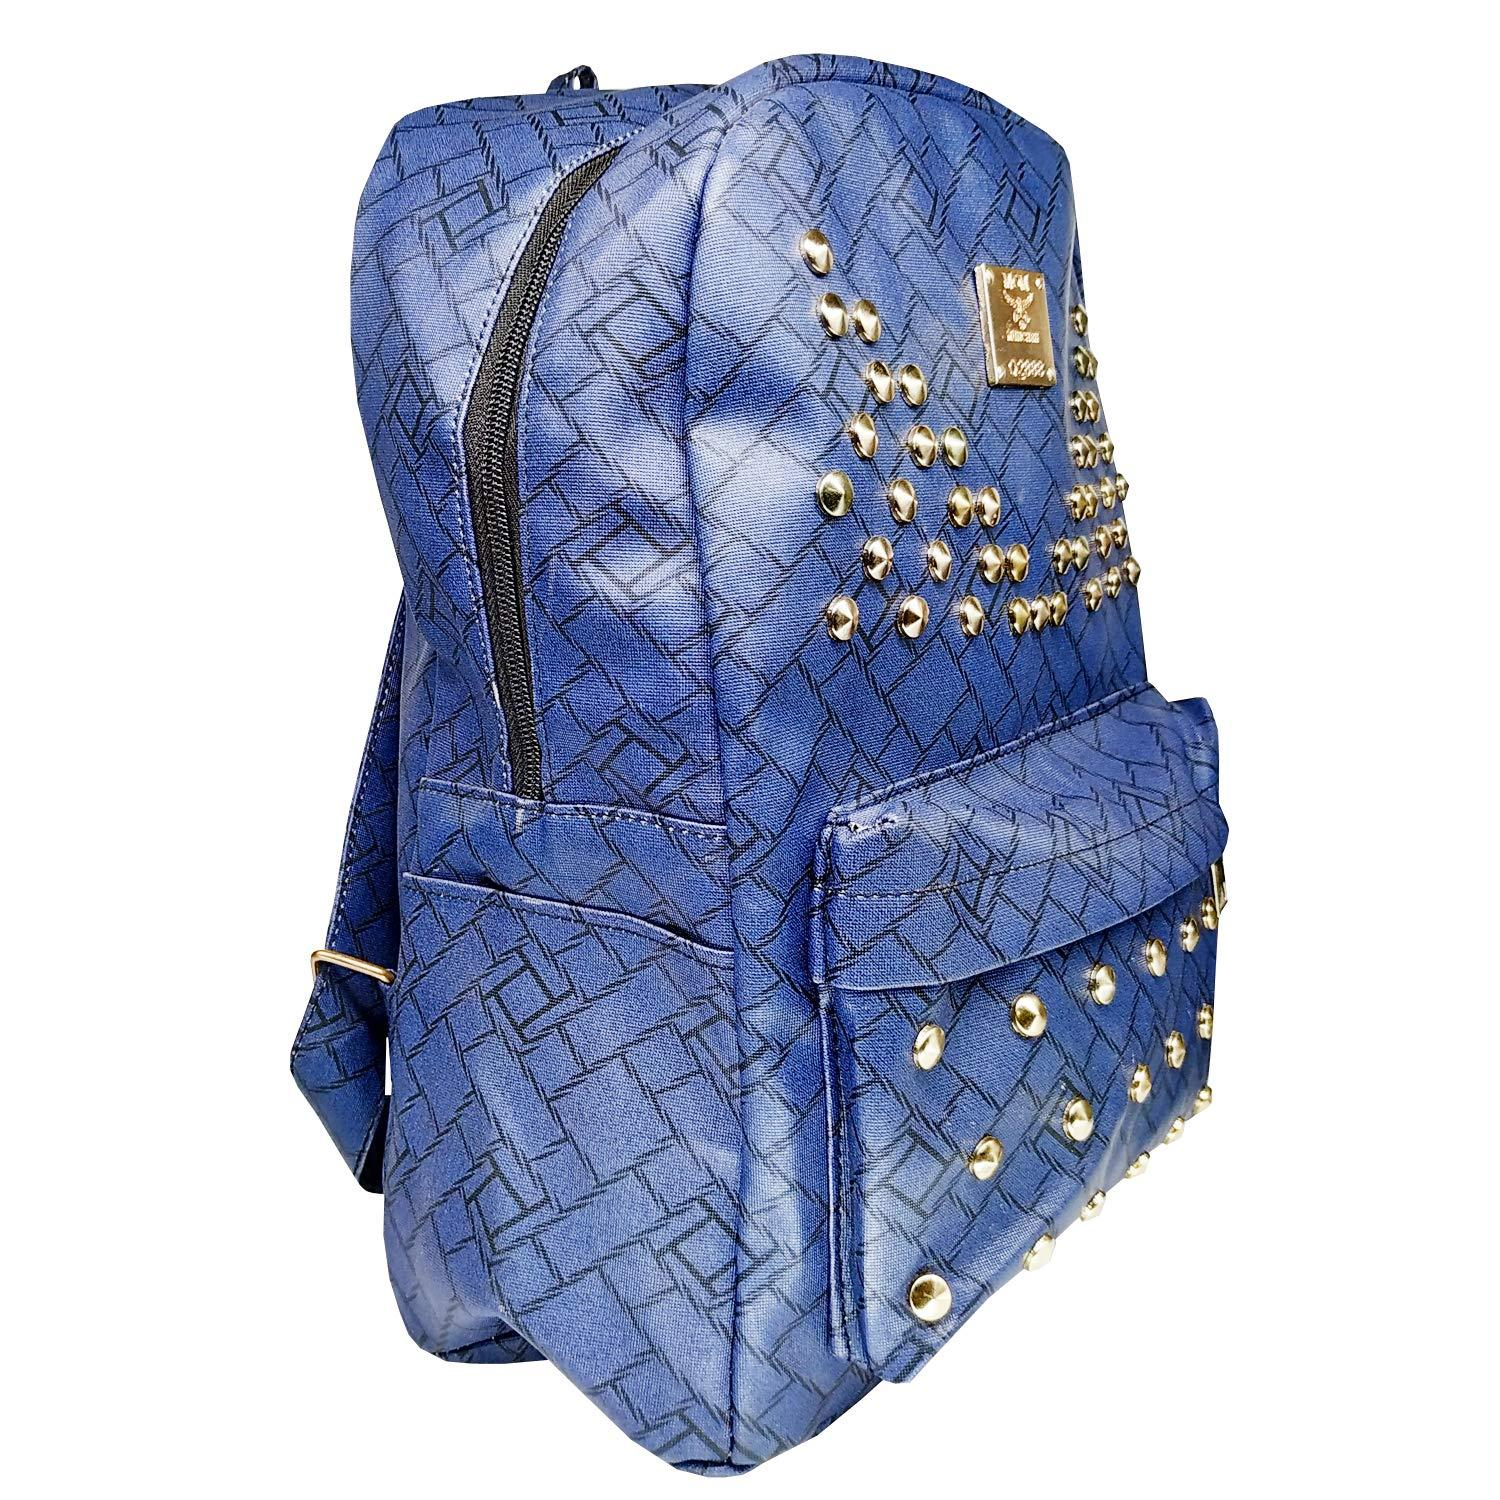 Artificial Leather Student Backpack For Girls  (Blue) - Bagaholics Gift